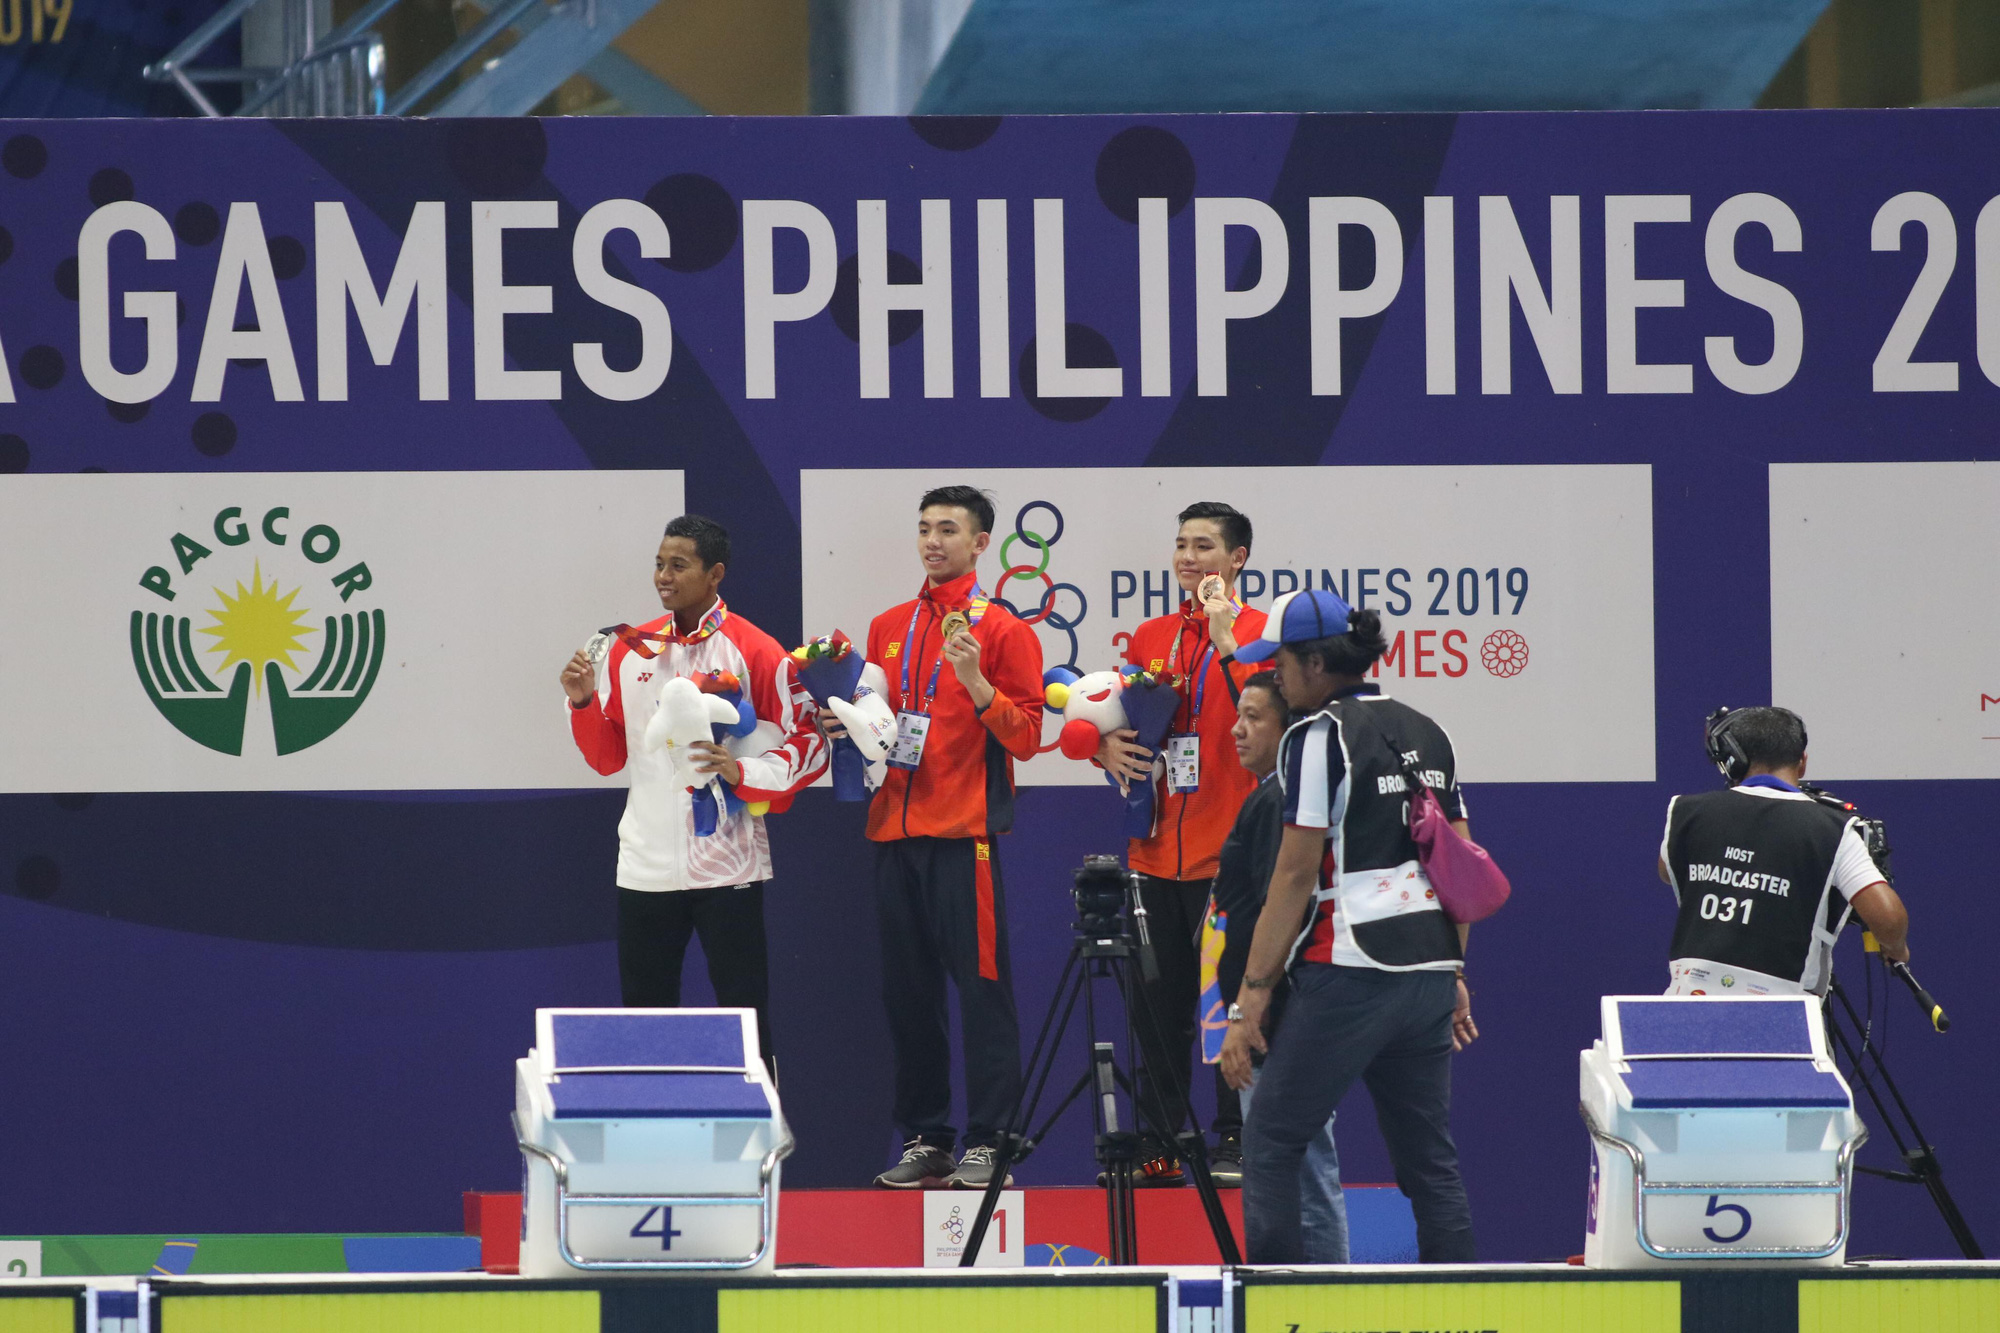 Vietnamese swimmer Nguyen Huy Hoang (C) receives the gold medal in the men's 1,500m freestyle event at the 30th SEA Games in New Clark City, the Philippines on December 5, 2019. Photo: Hoang Tuan / Tuoi Tre